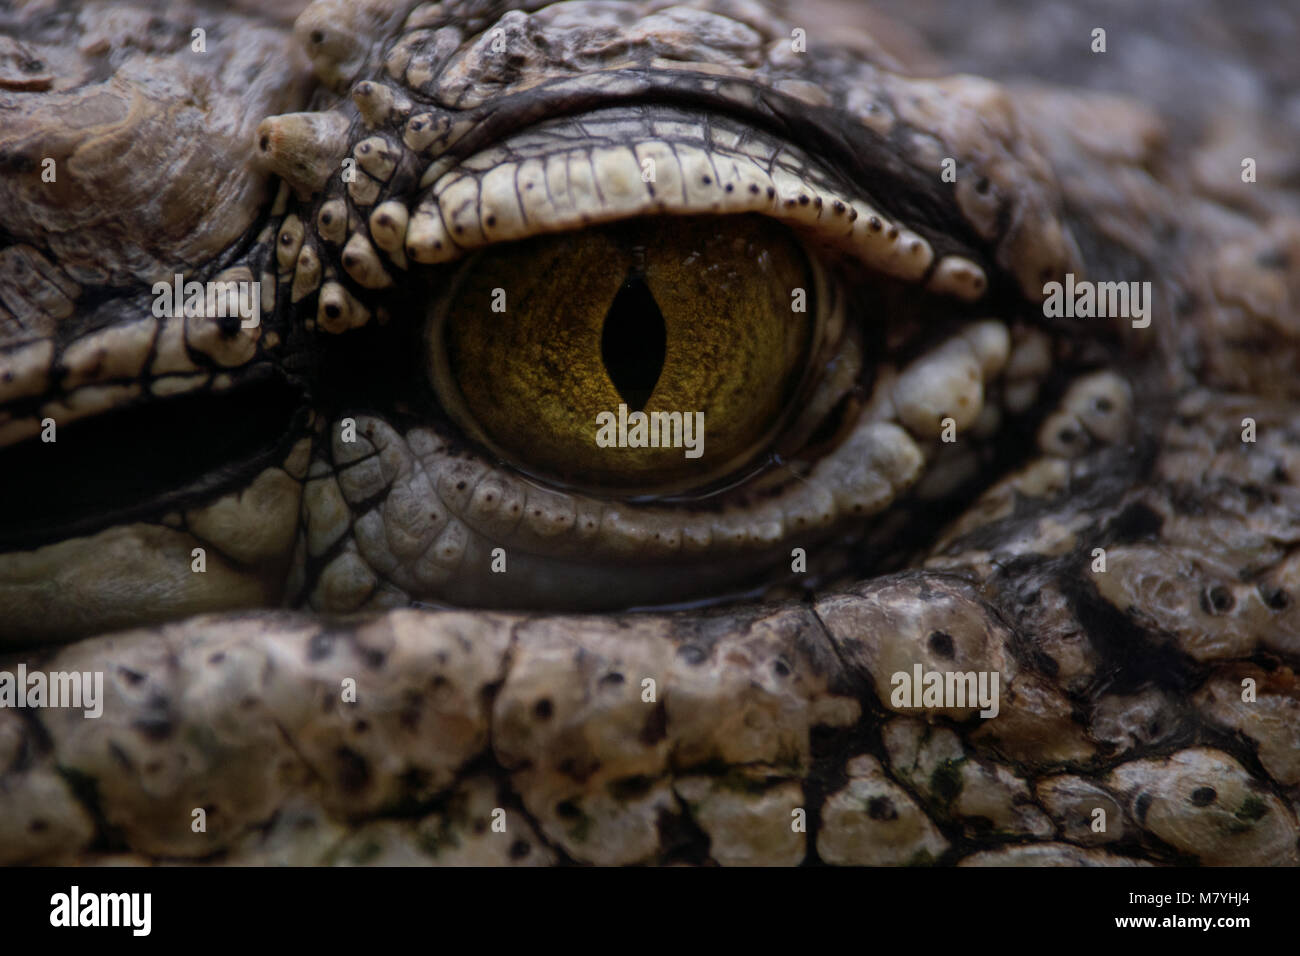 Detail of the eye of a nile crocodile - Stock Image